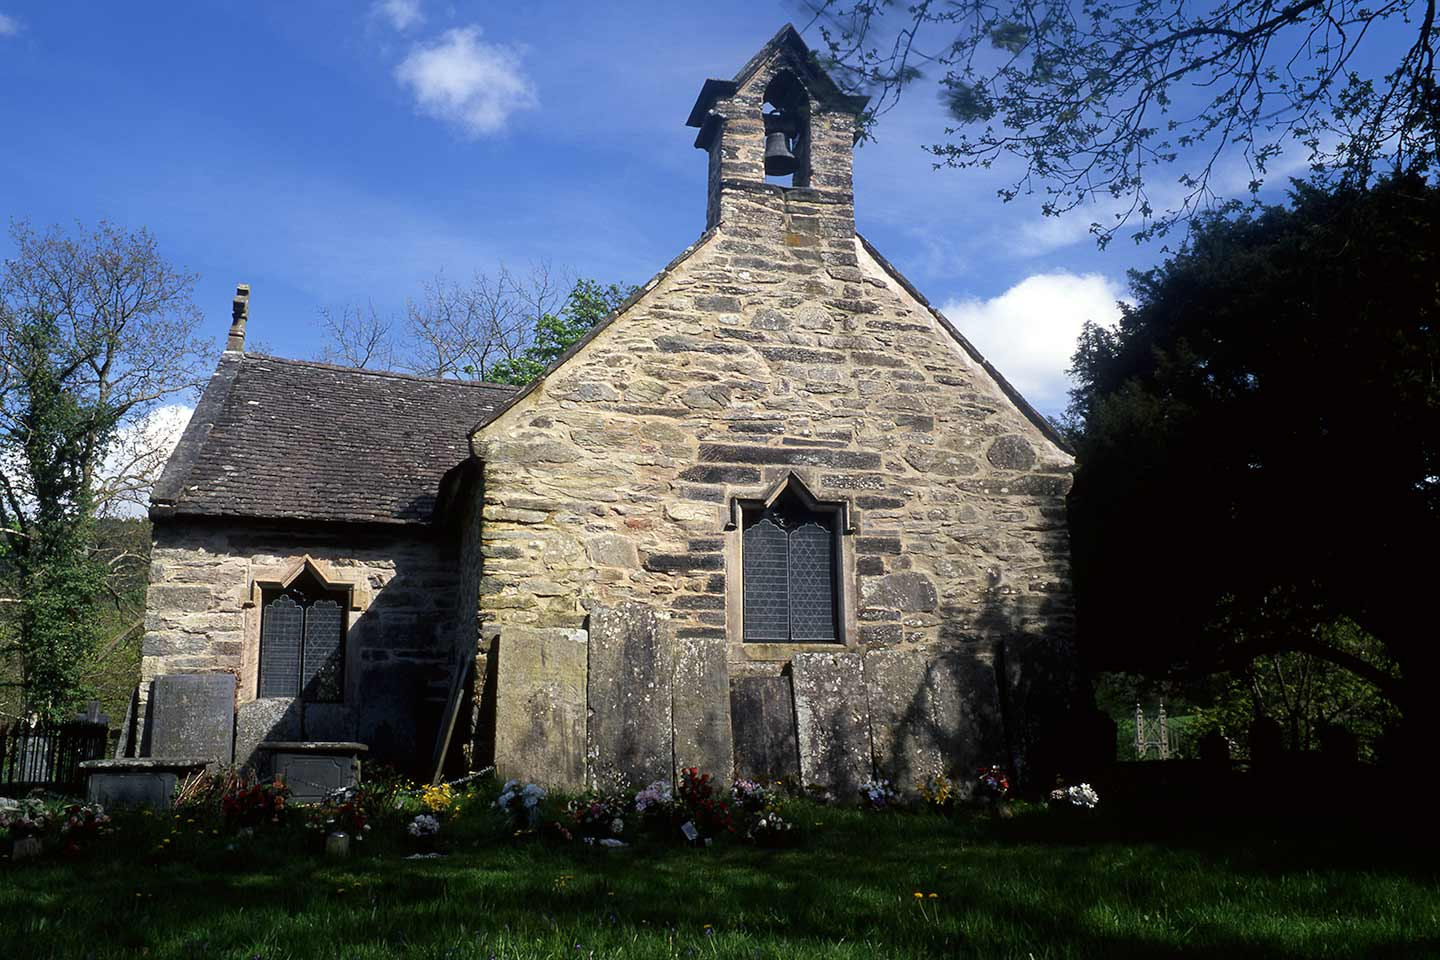 Image of the 14th century St Michael's Old Church in Betws-y-Coed